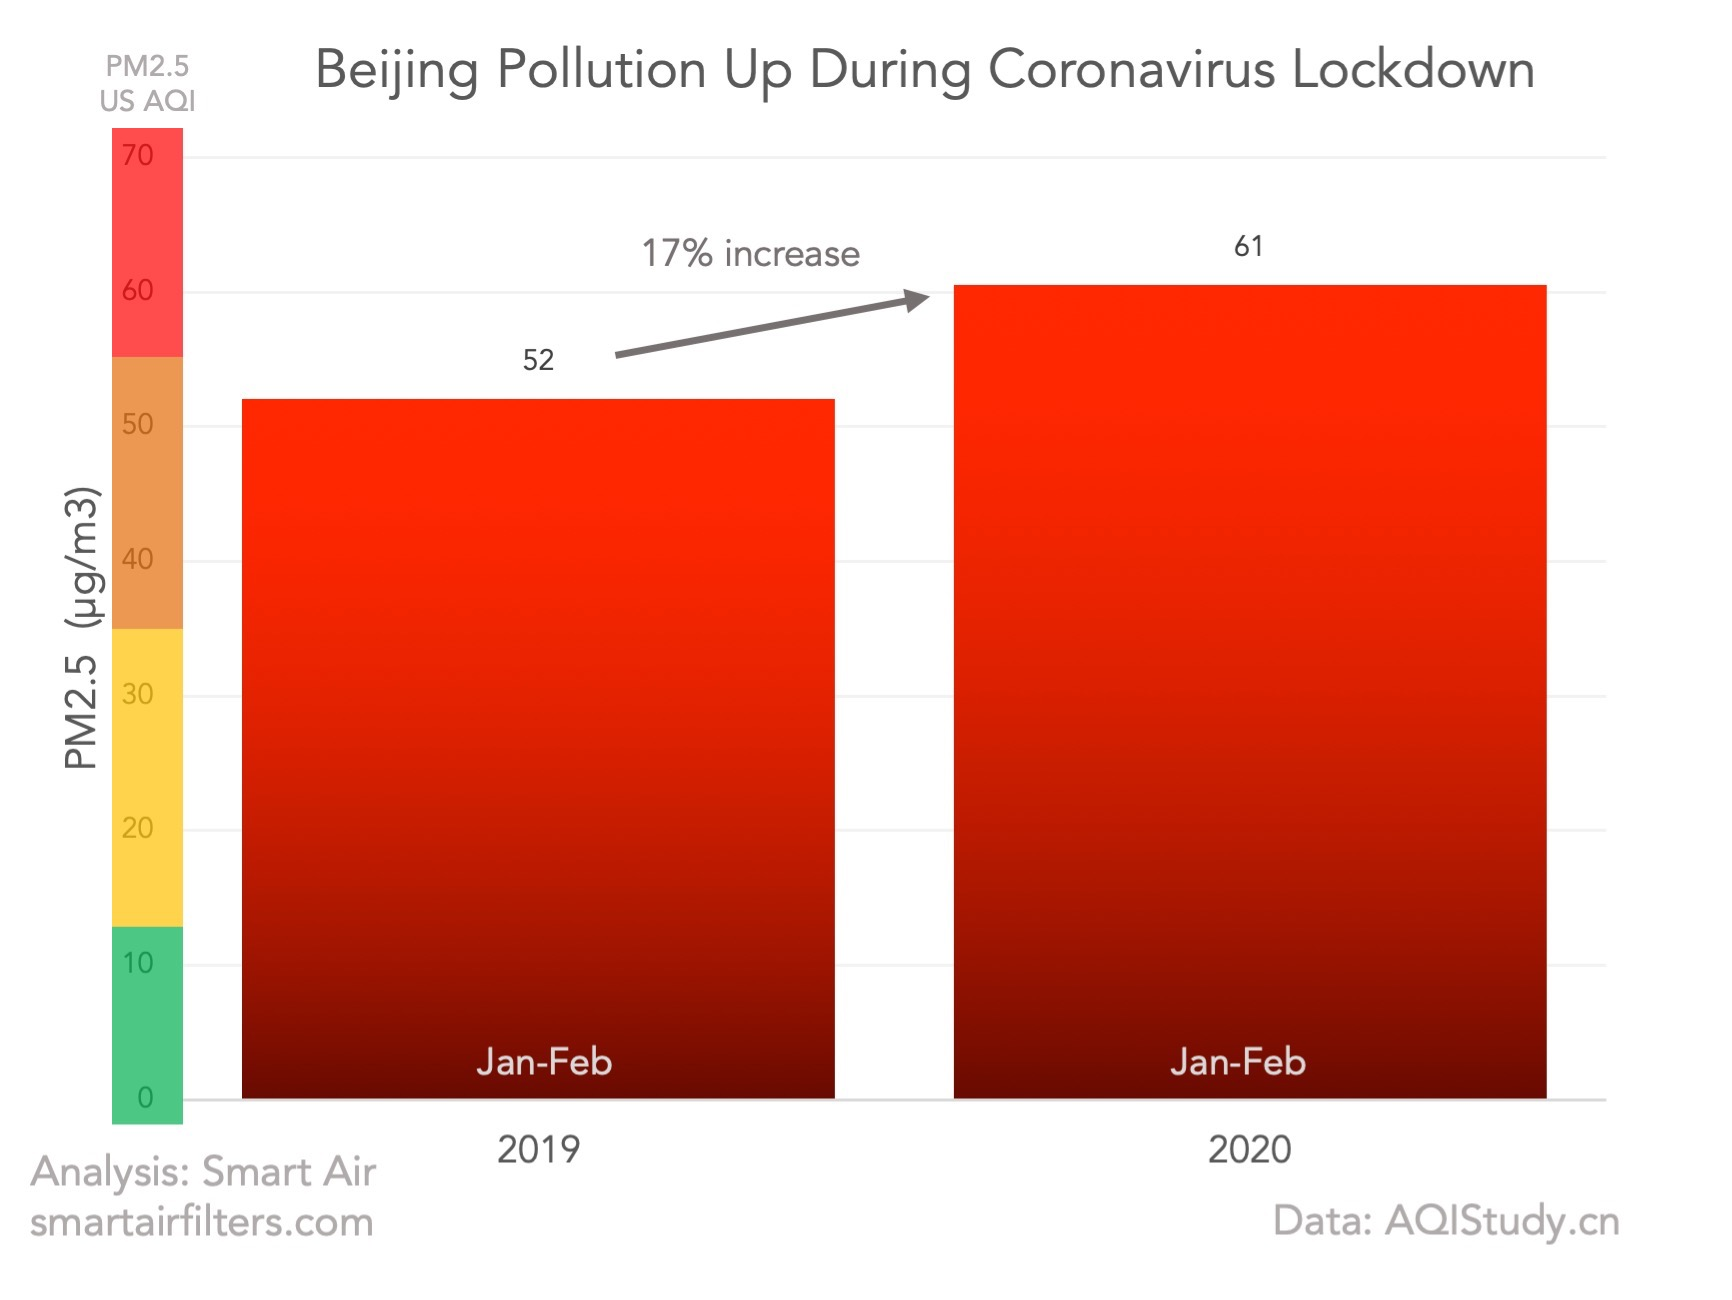 Beijing PM2.5 Up During Coronavirus Lockdown